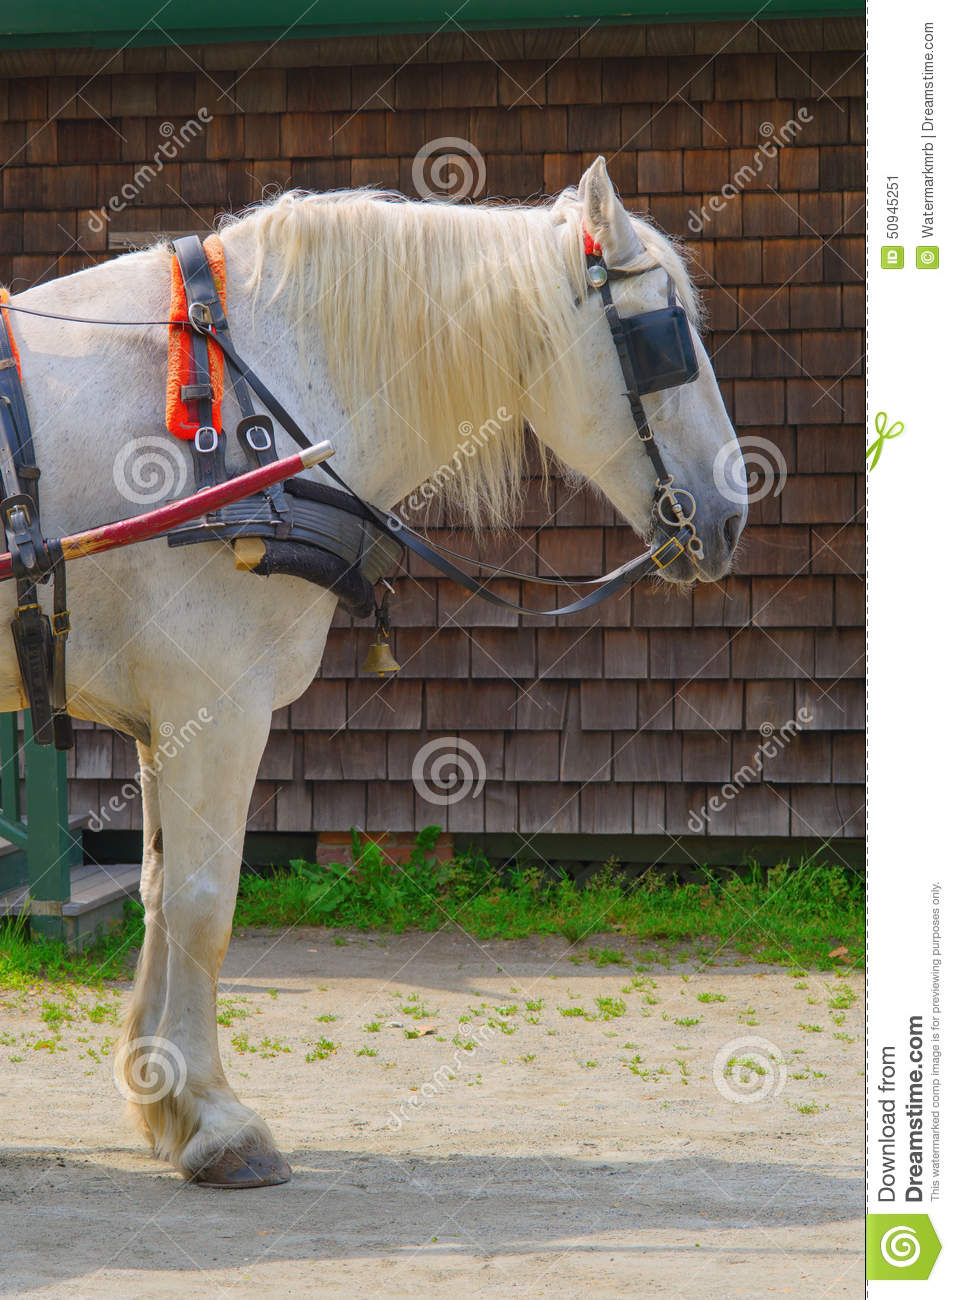 White Horse With Blinders Stock Image Image Of Hooves 50945251